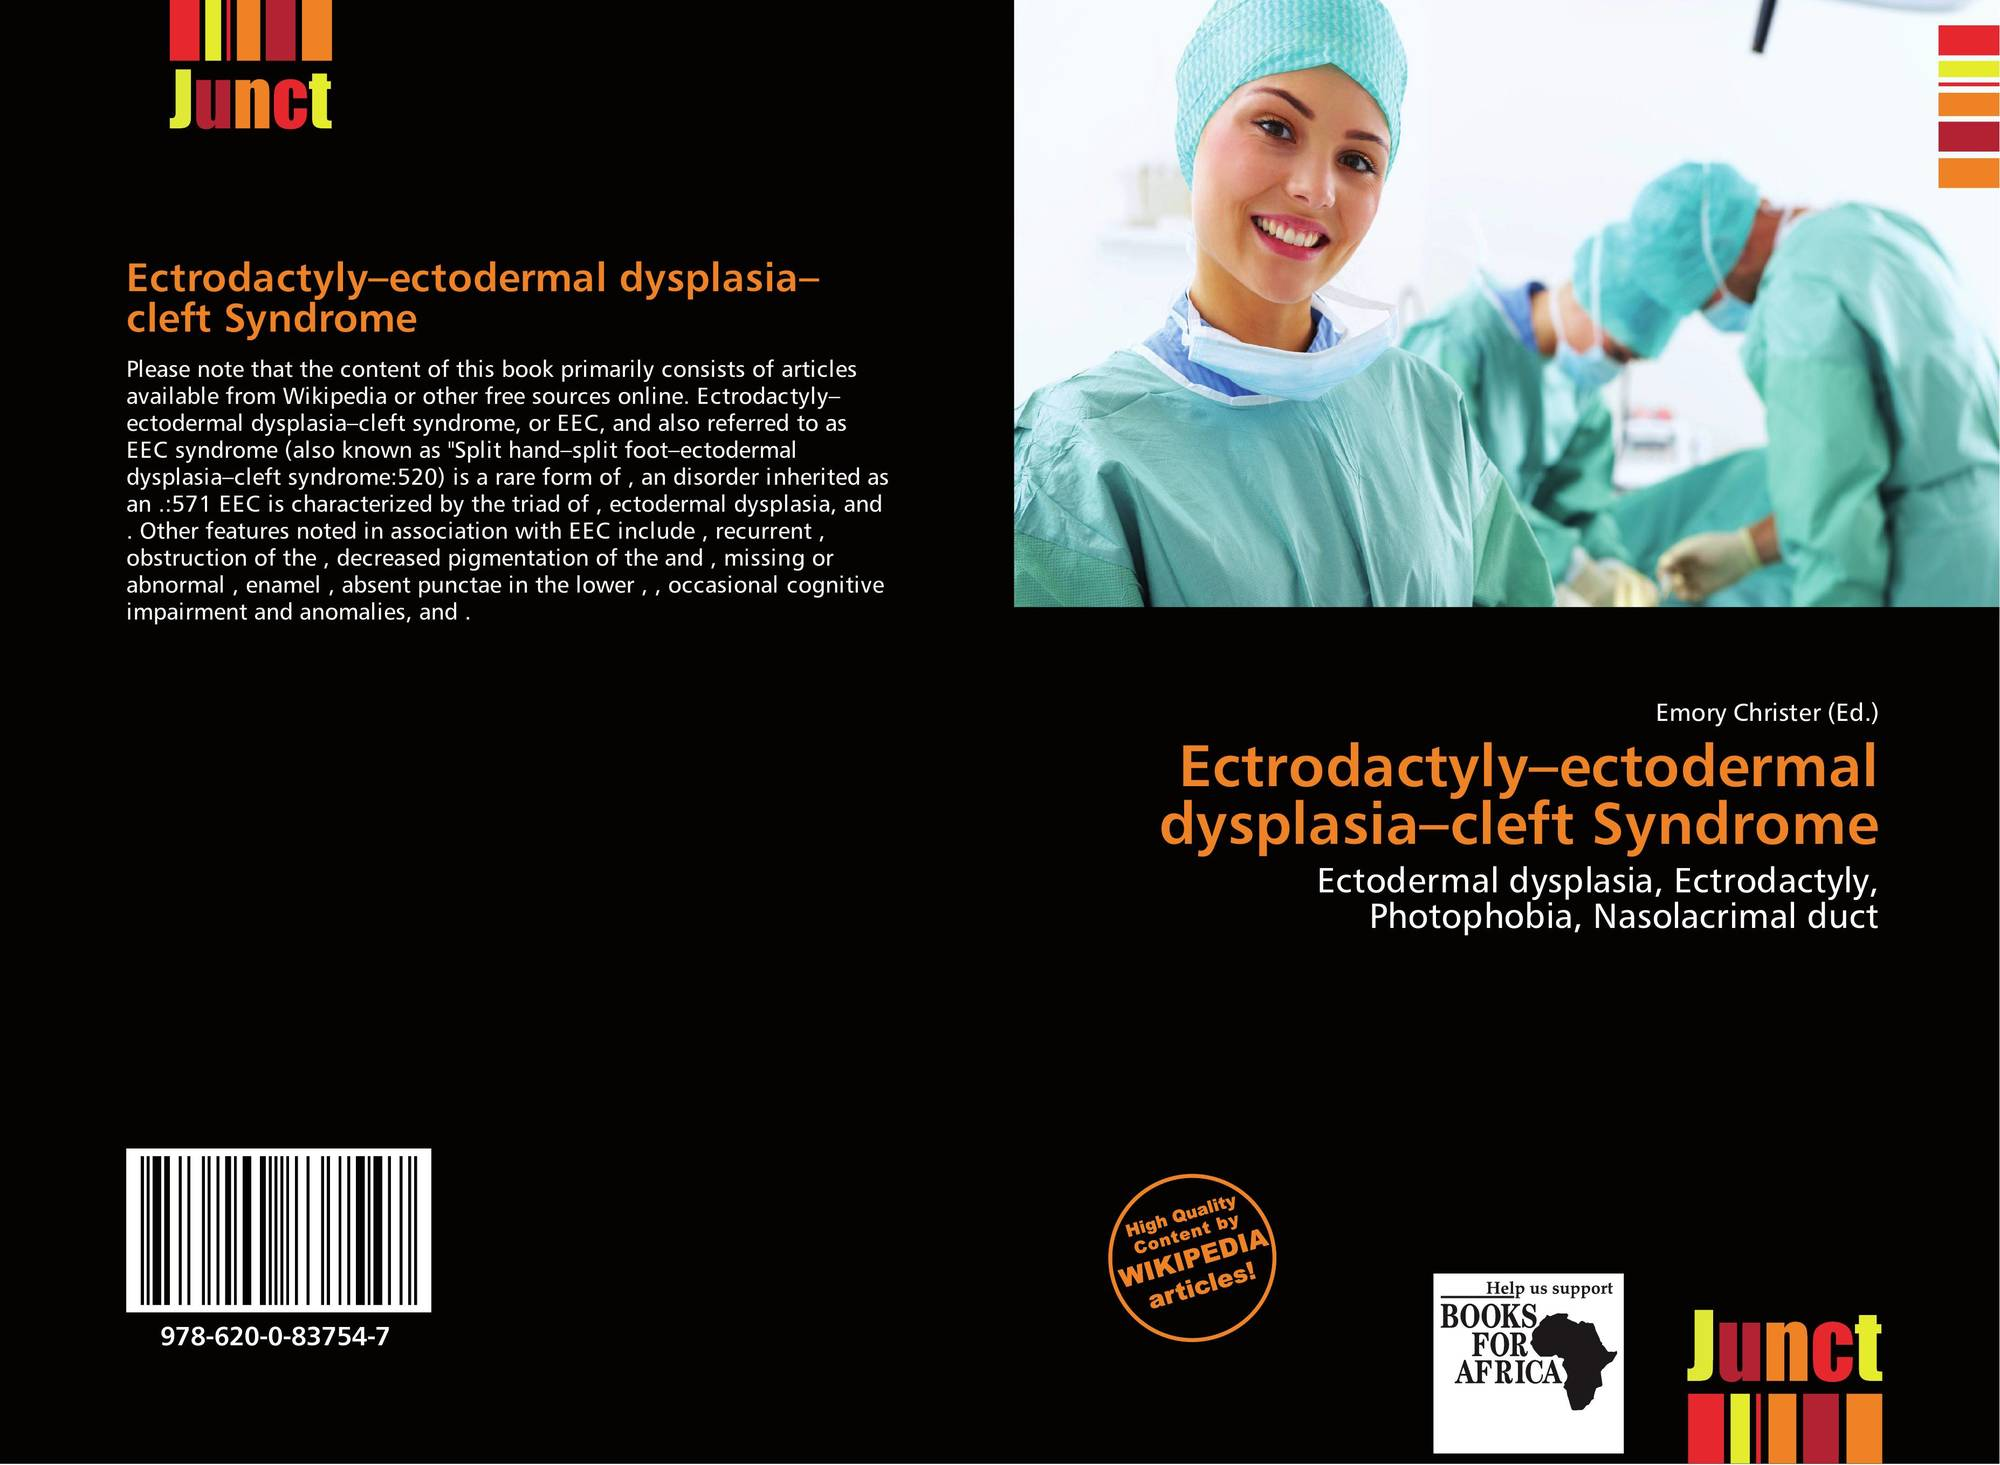 Ectrodactyly–ectodermal dysplasia–cleft Syndrome, 978-620-0